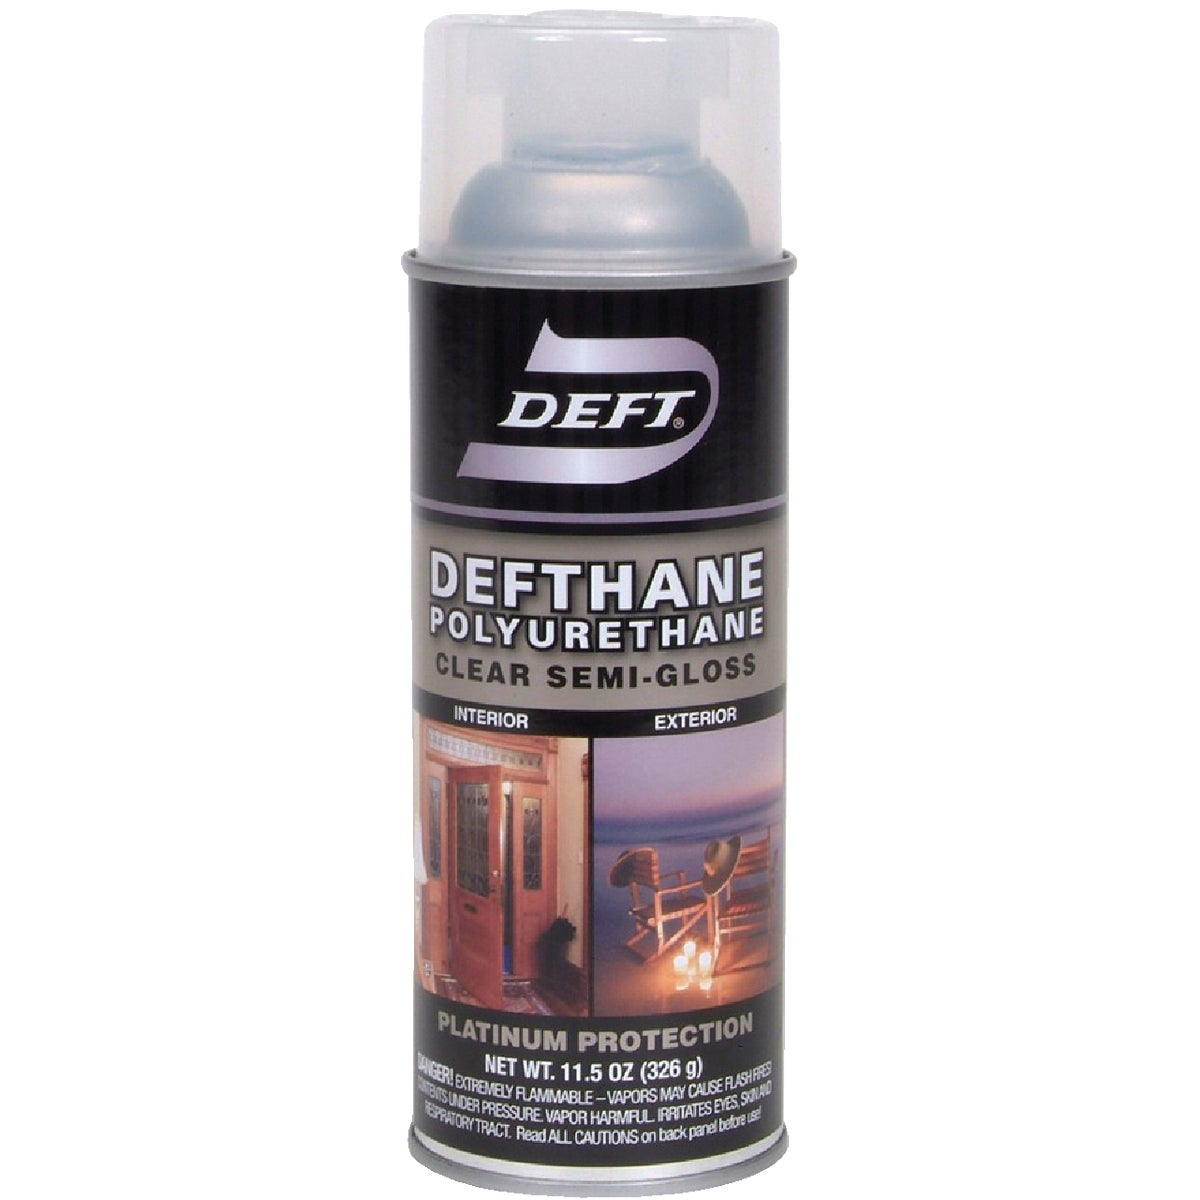 S/G DEFTHANE SPRAY - DFT023/54 by Deft